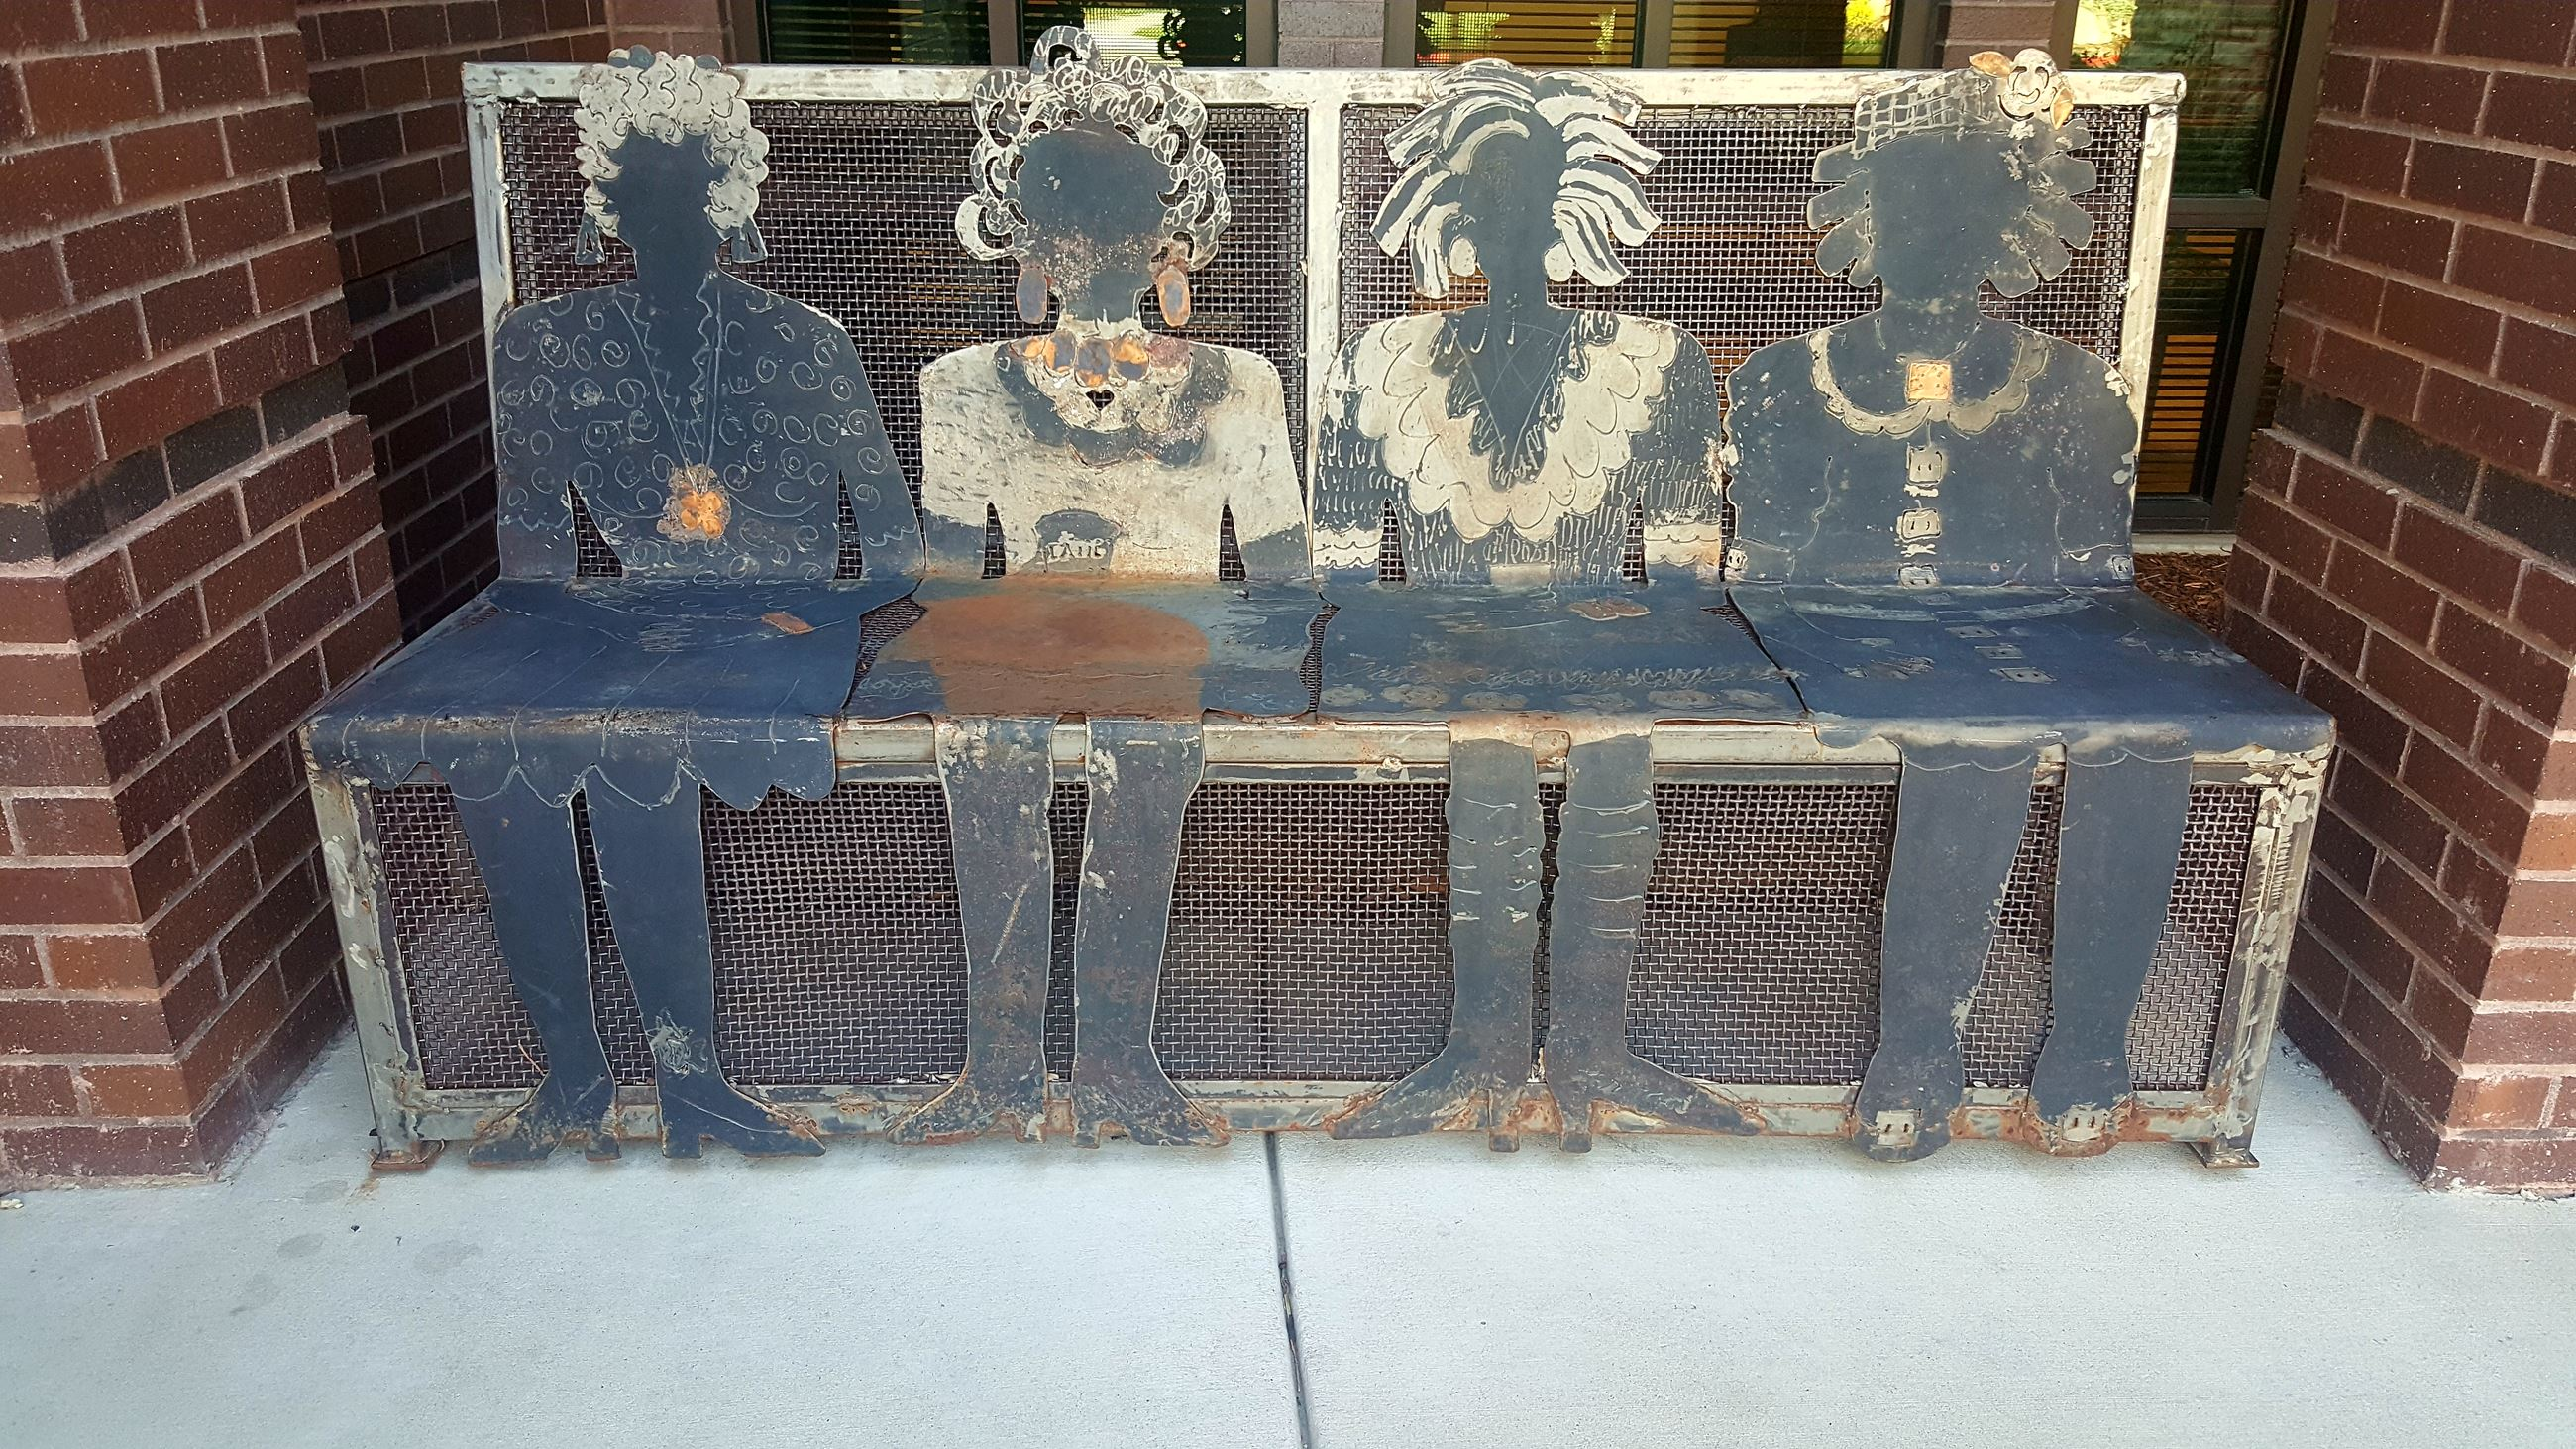 Bench with metal cutouts that look like women.